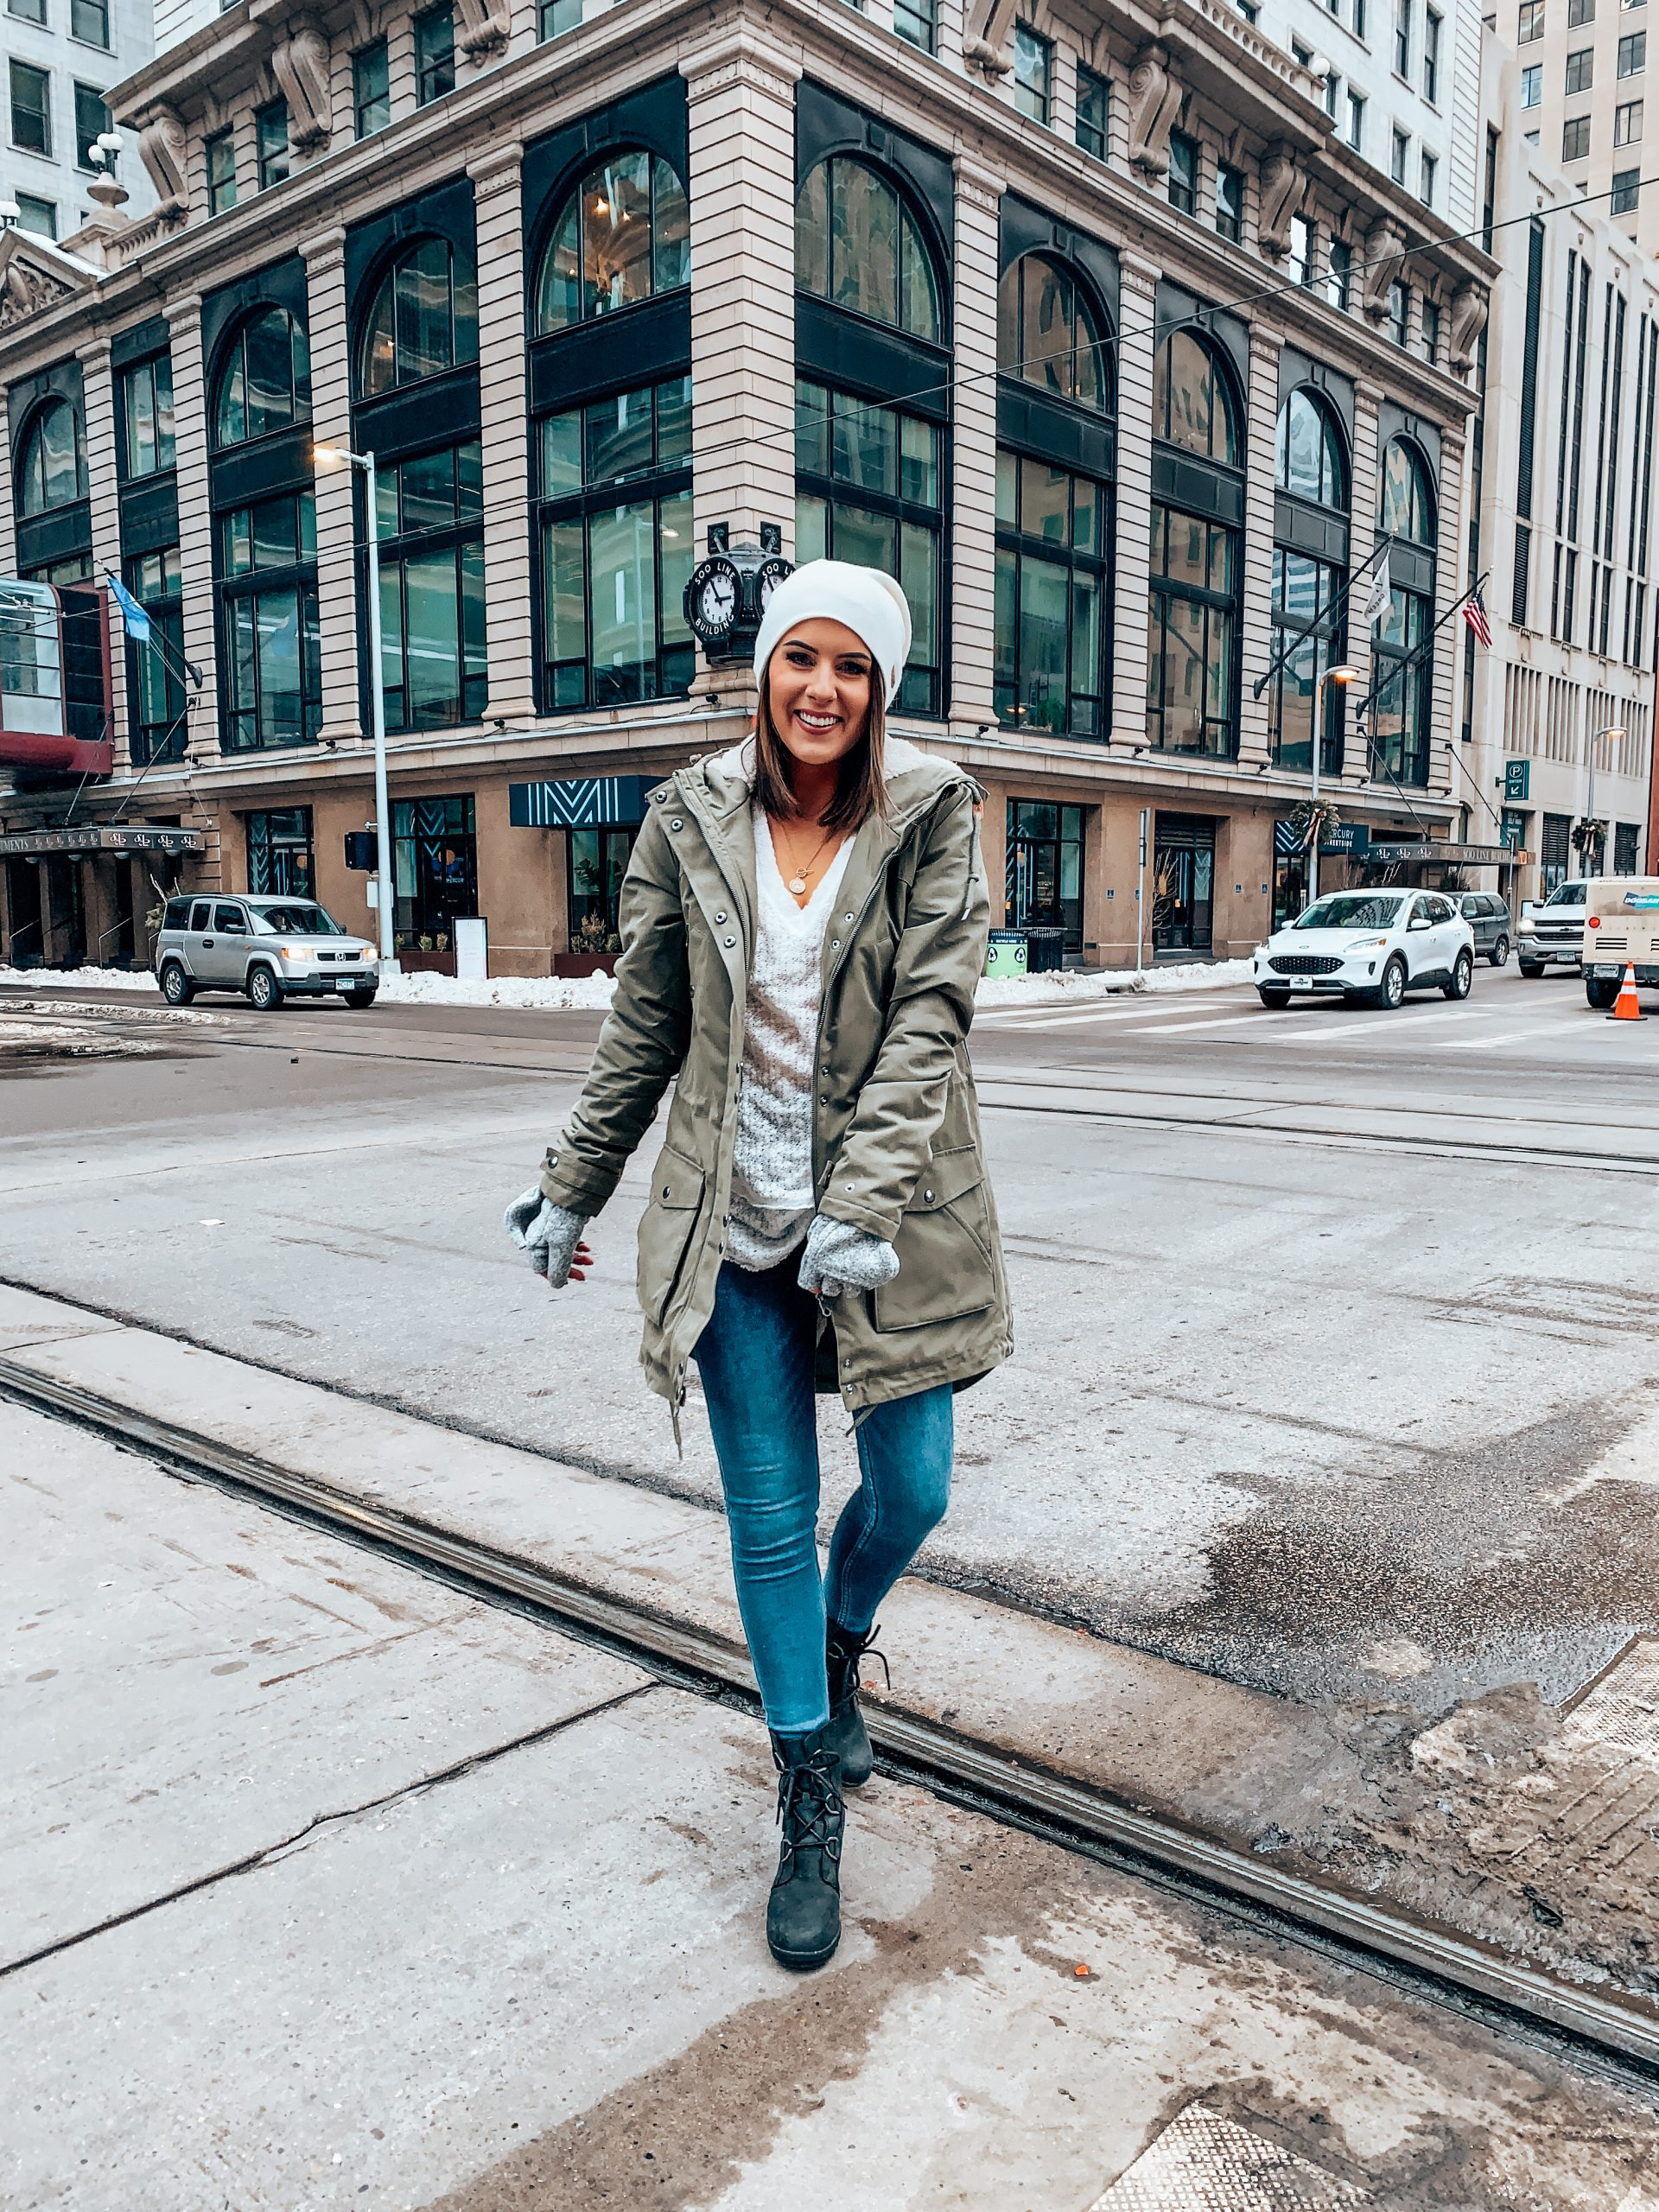 Backcountry Semi-Annual SALE! | Style Blogger Lauren Meyer shares End of Winter Essentials + Backcountry Semi-Annual SALE!